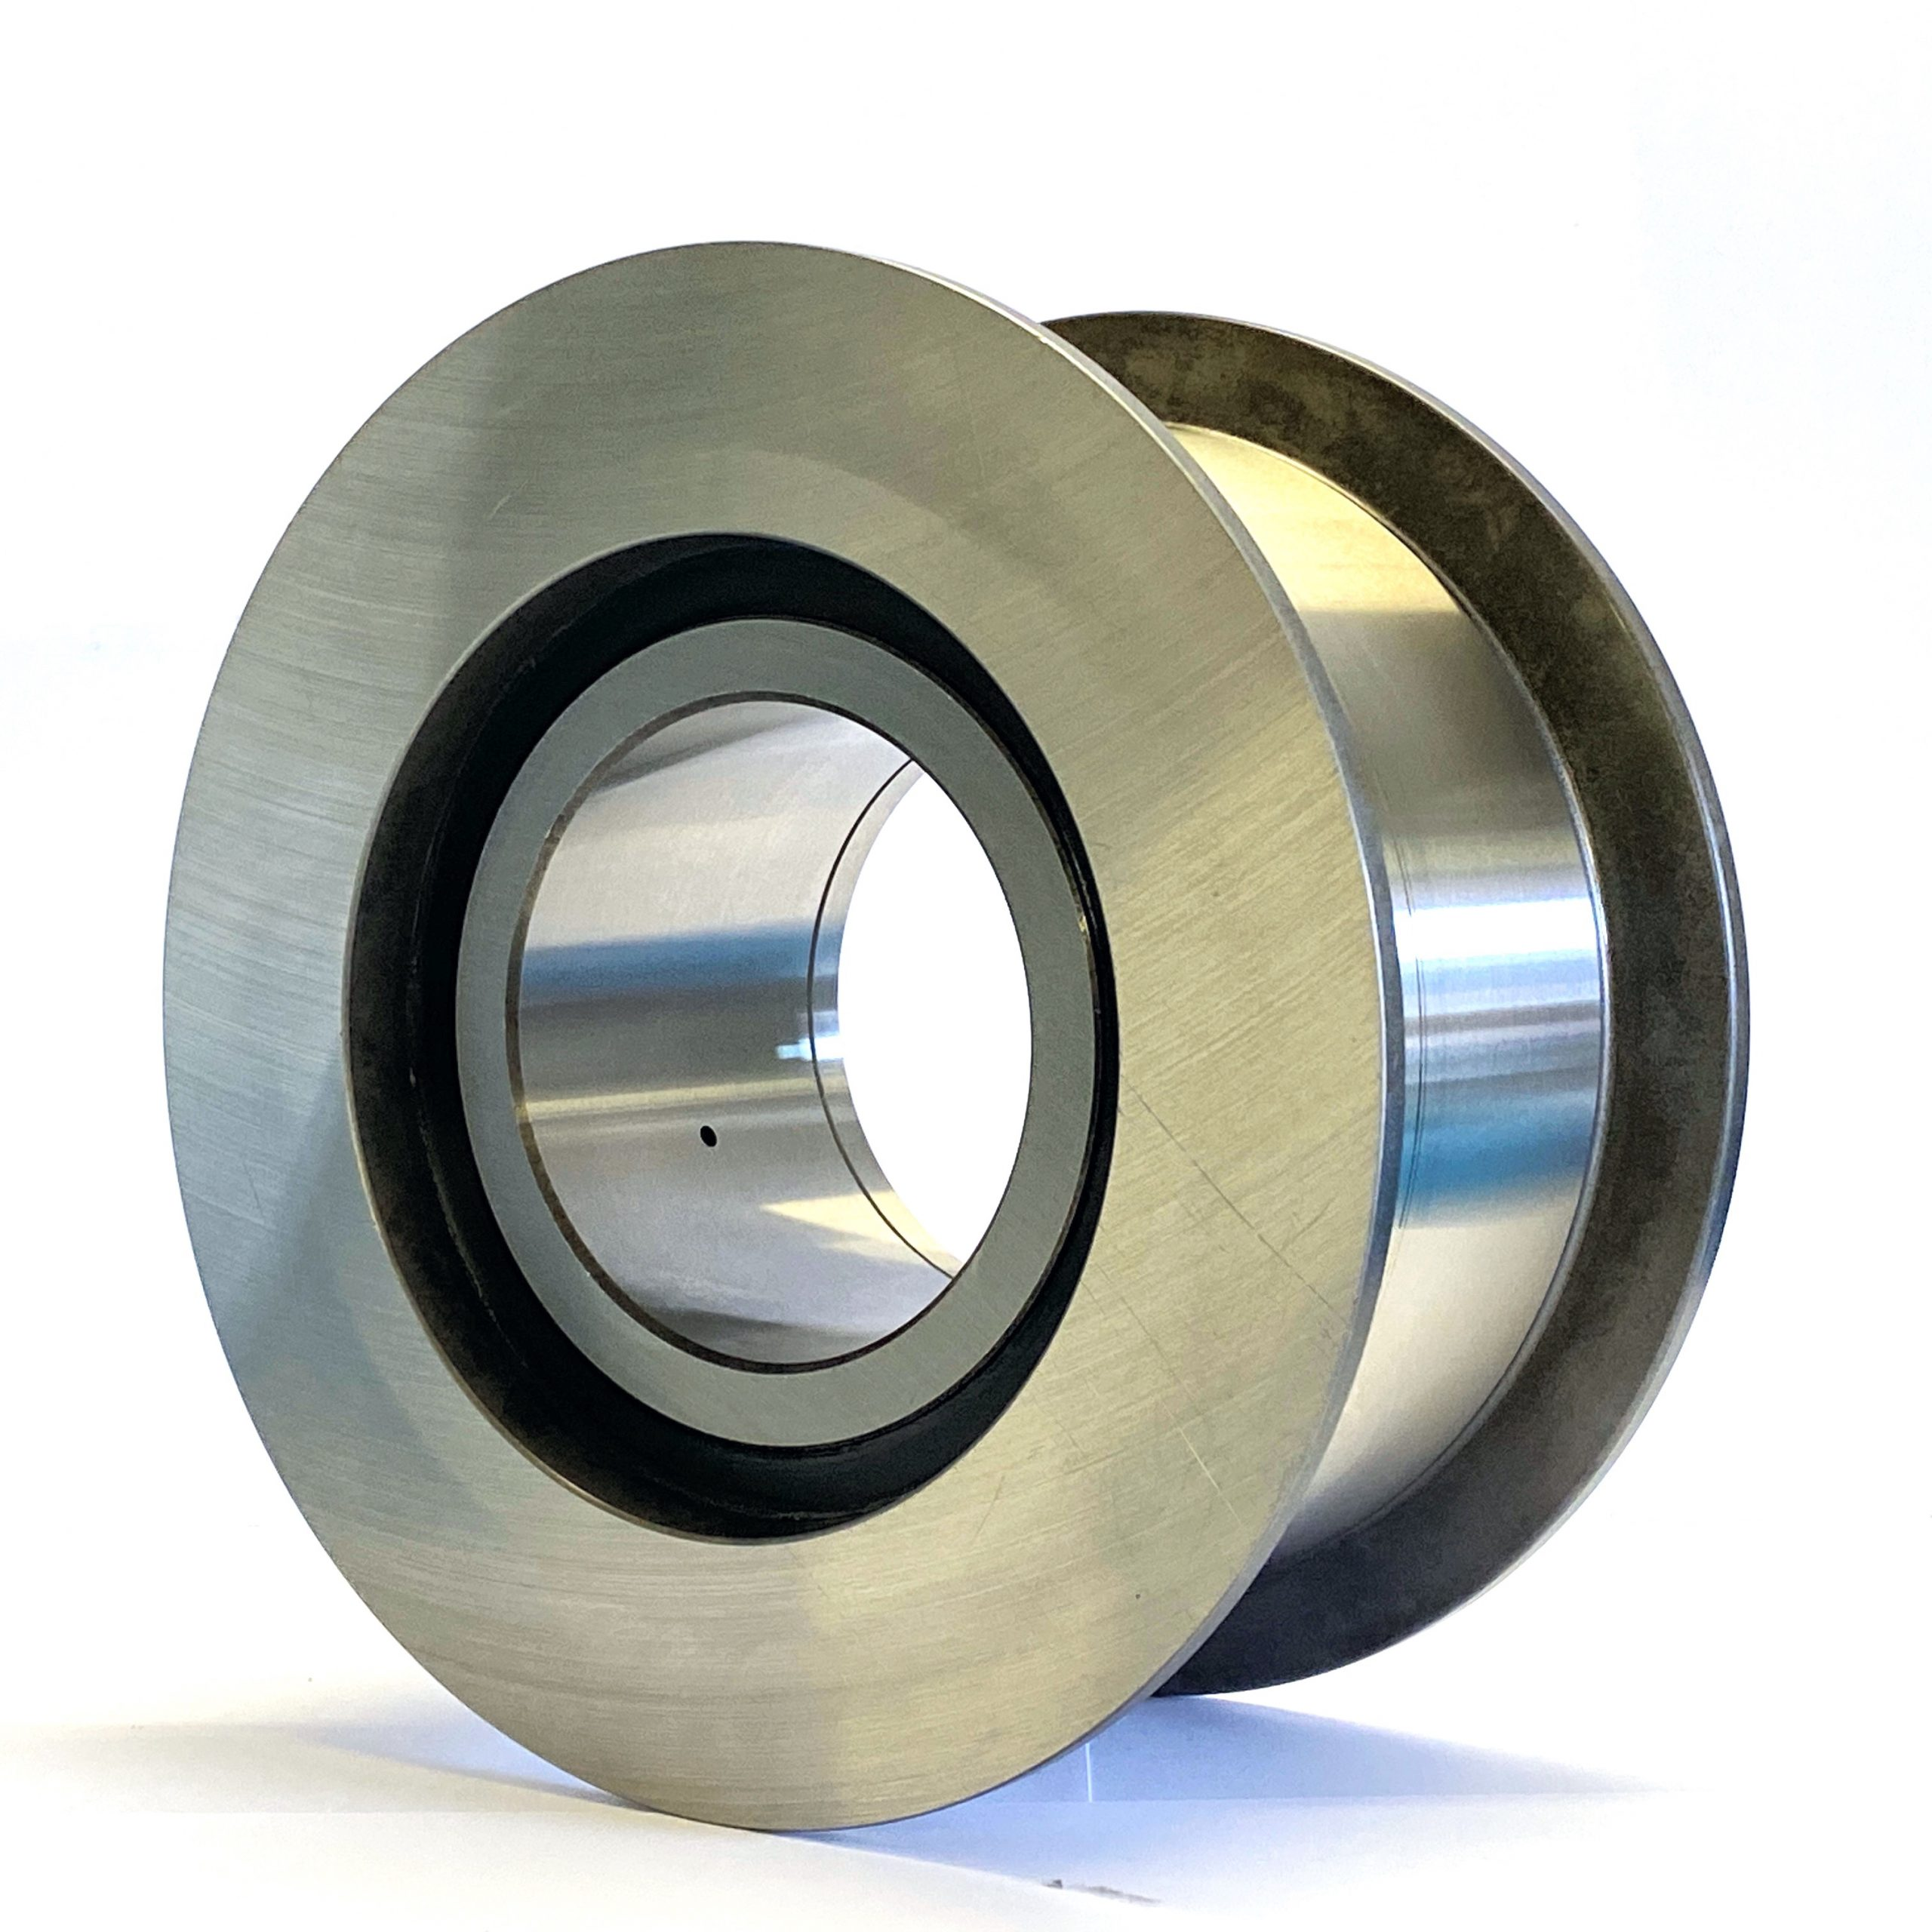 Cylindrical roller full complement Chain Pulleys for medium and high loads